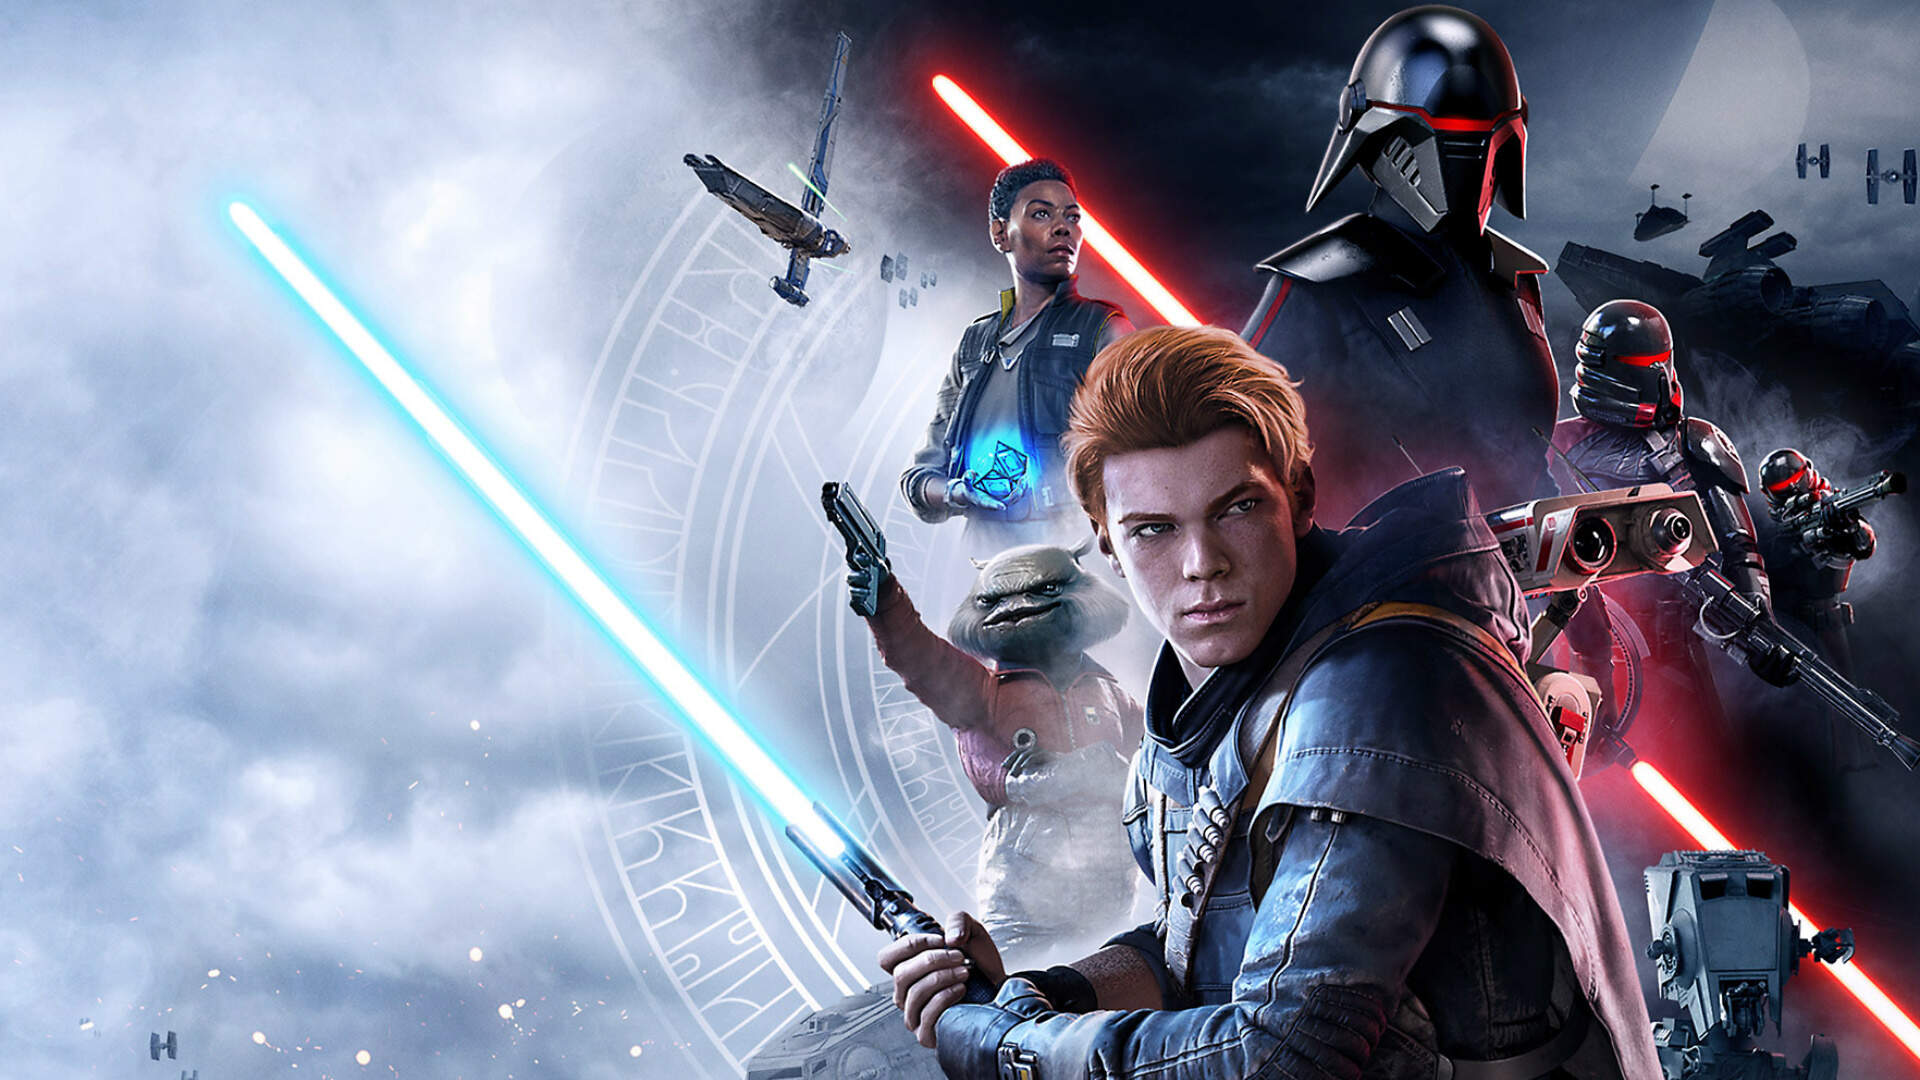 Star Wars Jedi: Fallen Order Comes to Xbox Game Pass Via EA Play Next Week